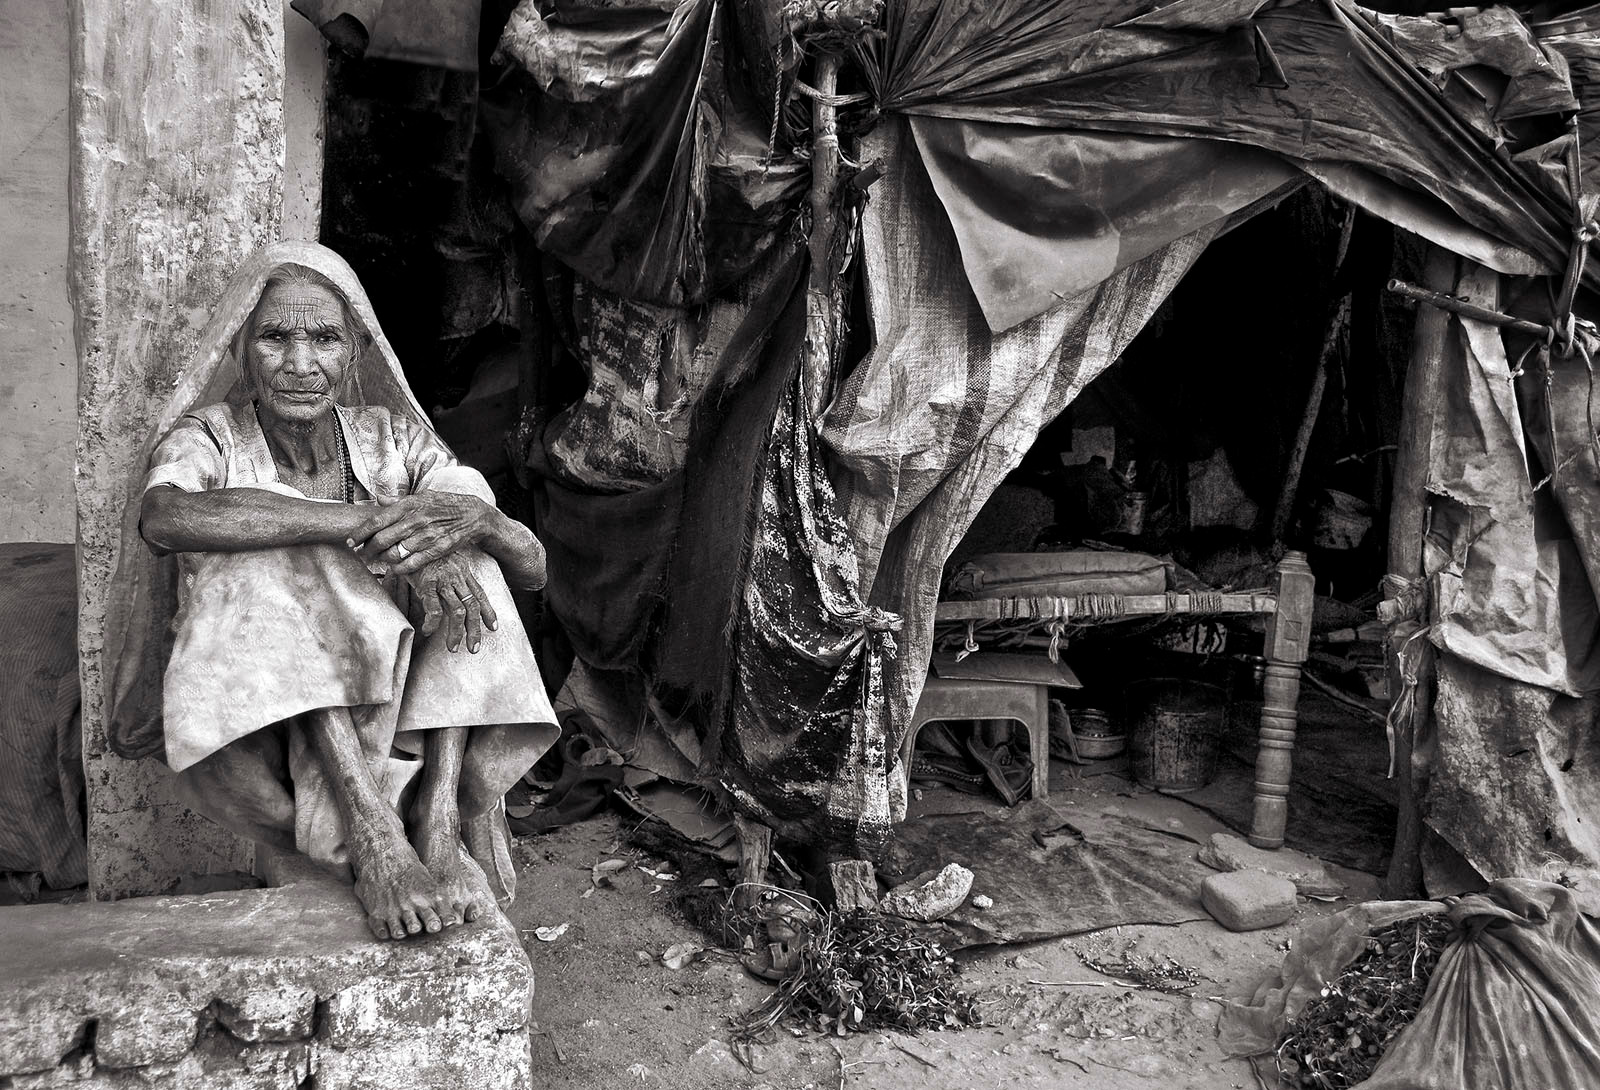 MONO - Old Woman's Home by John Butler (18 marks)